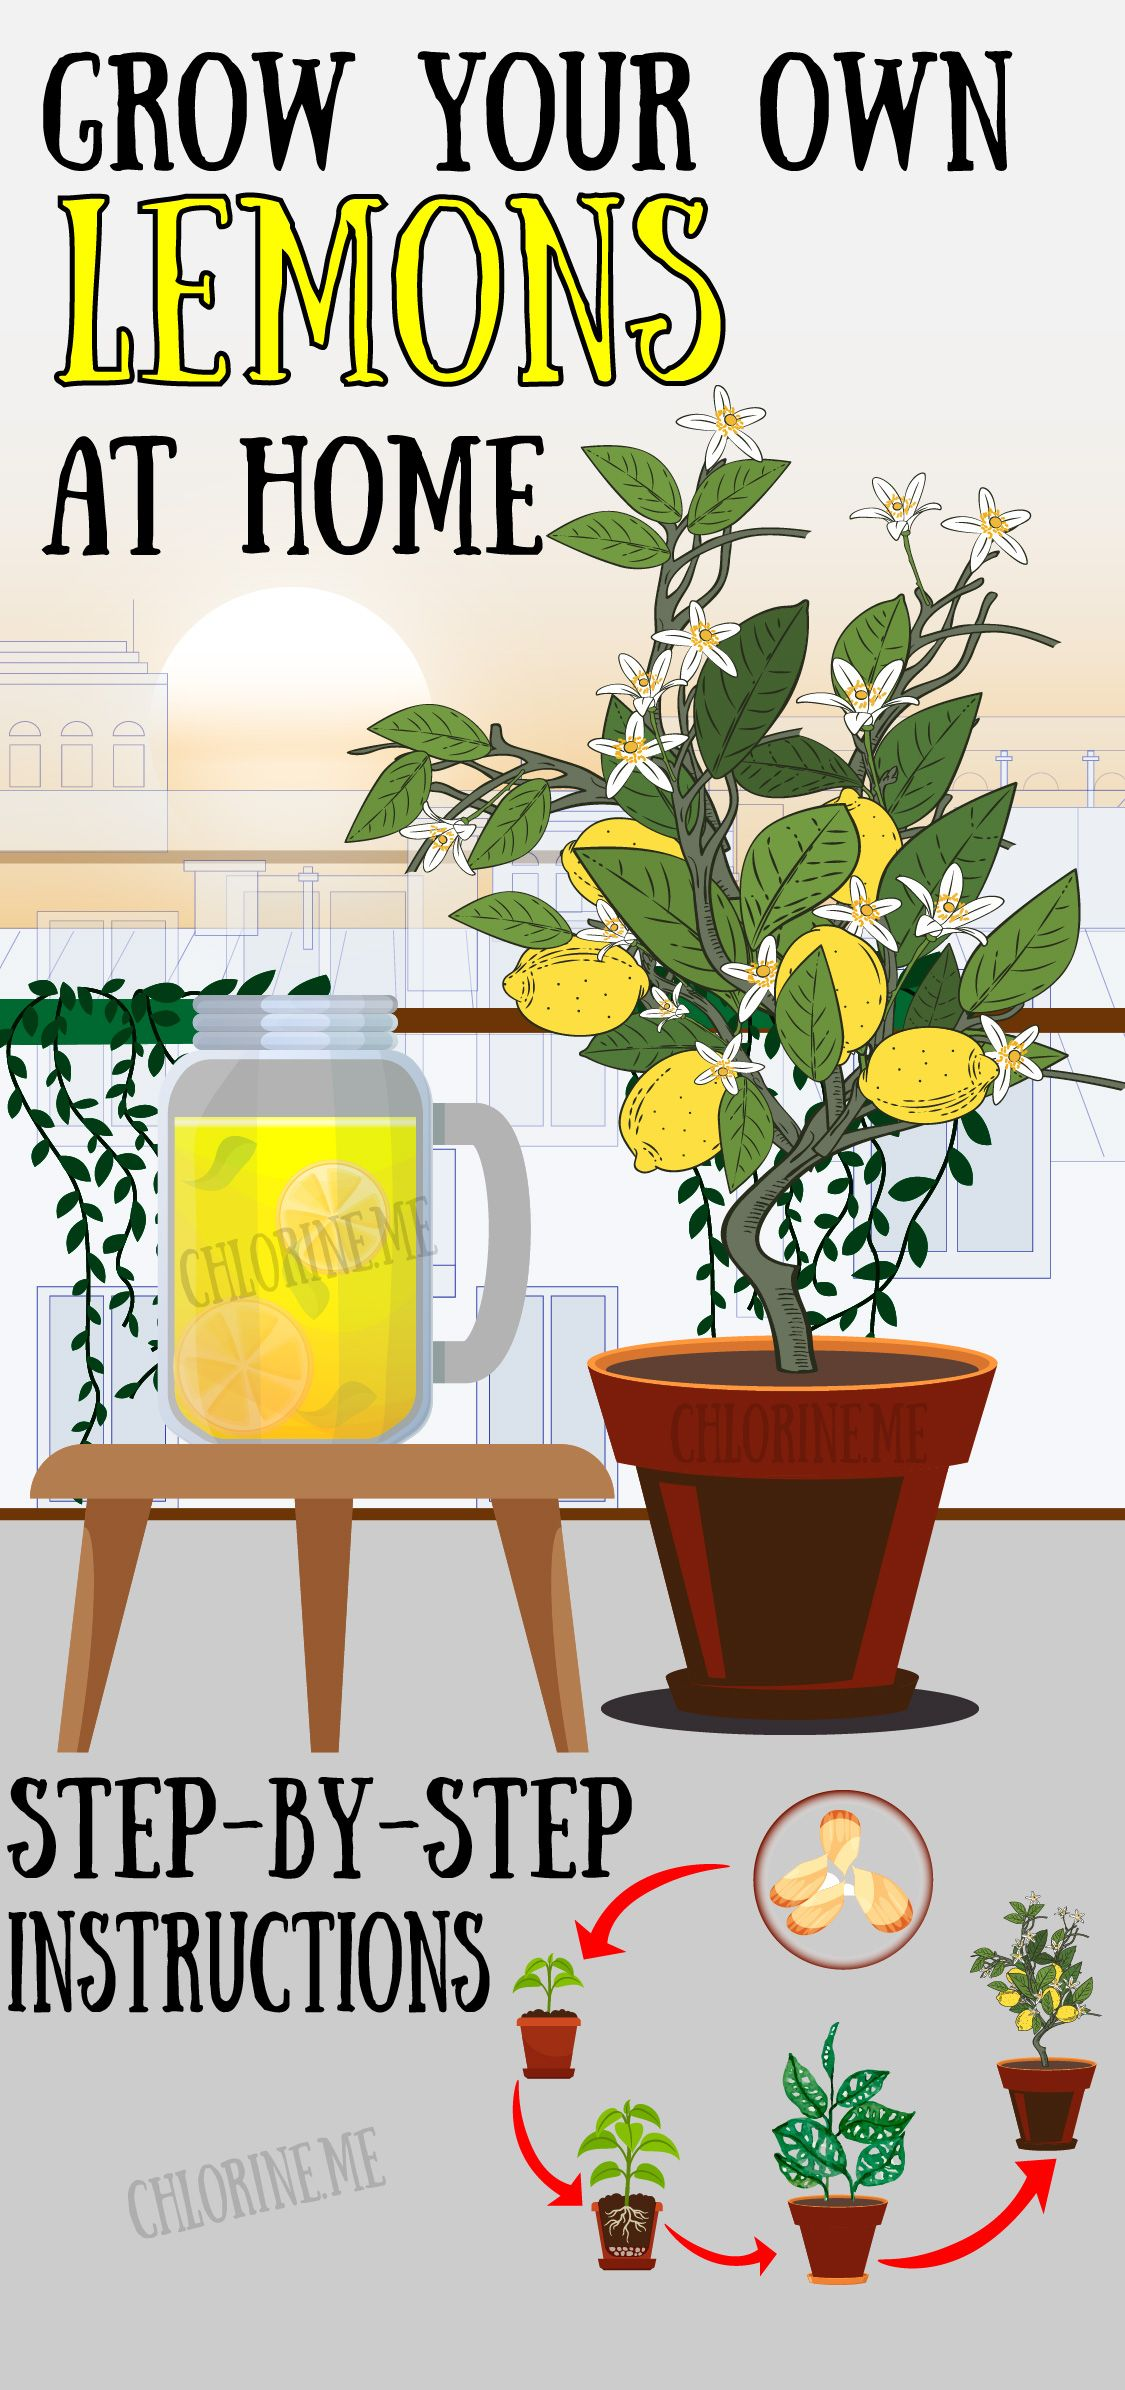 GROWN YOUR OWN LEMON TREE FROM SEED AT HOME